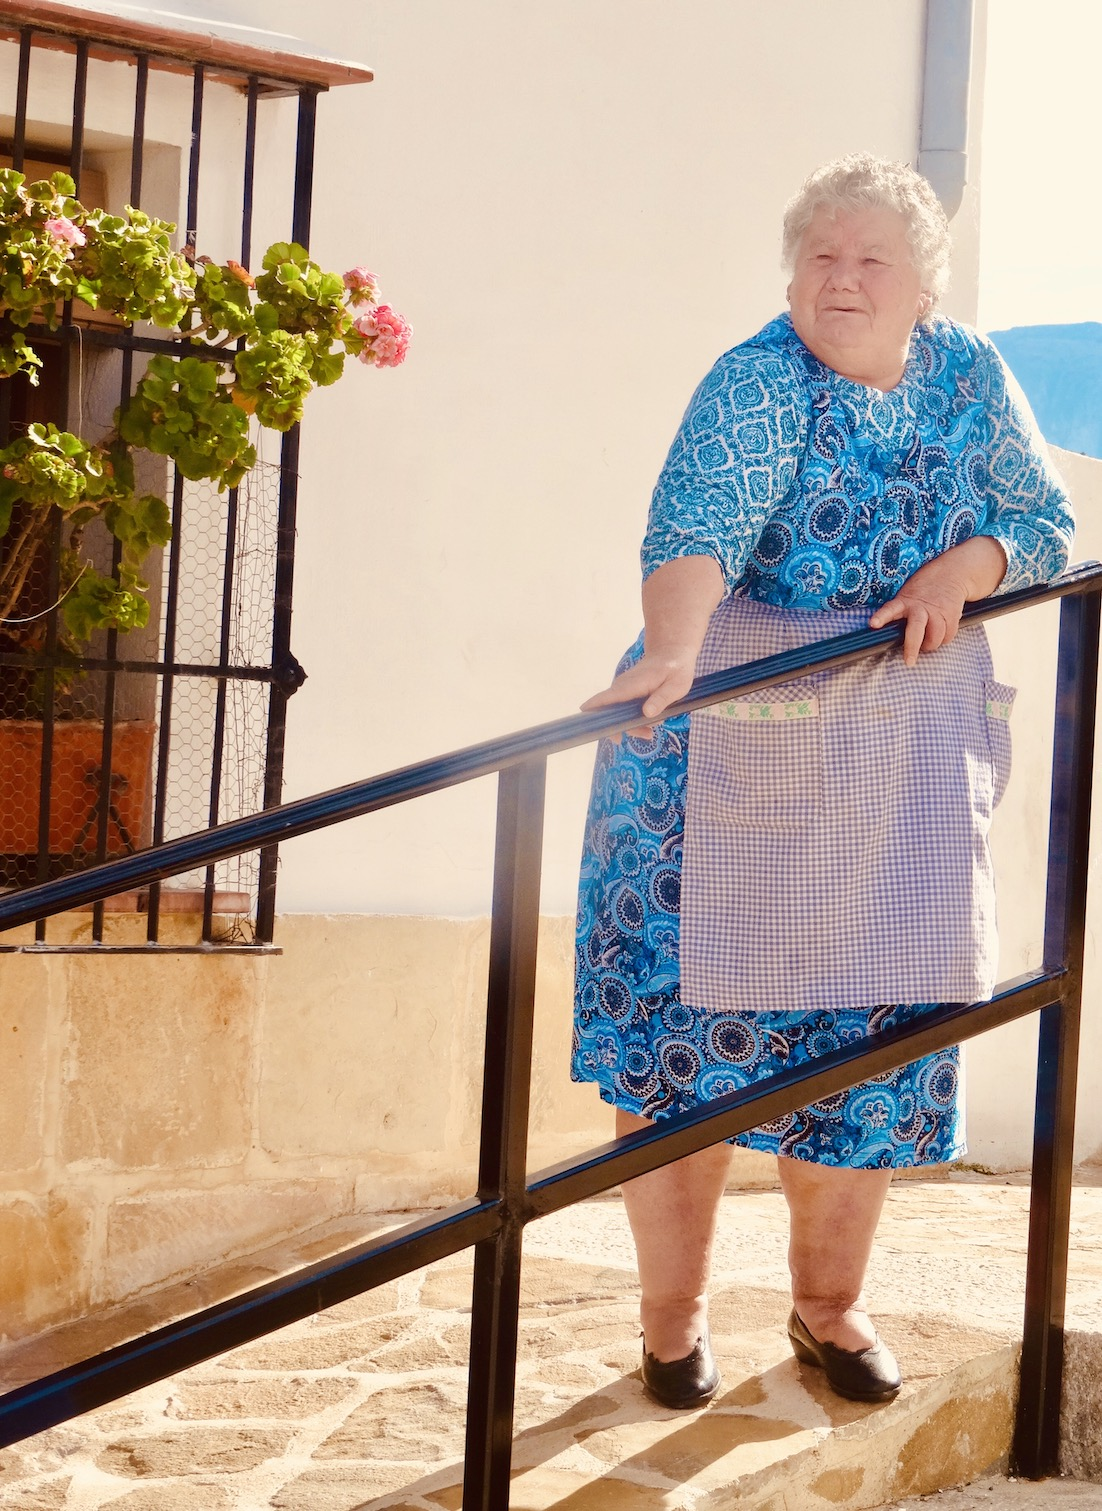 Old lady Antequera Spain.